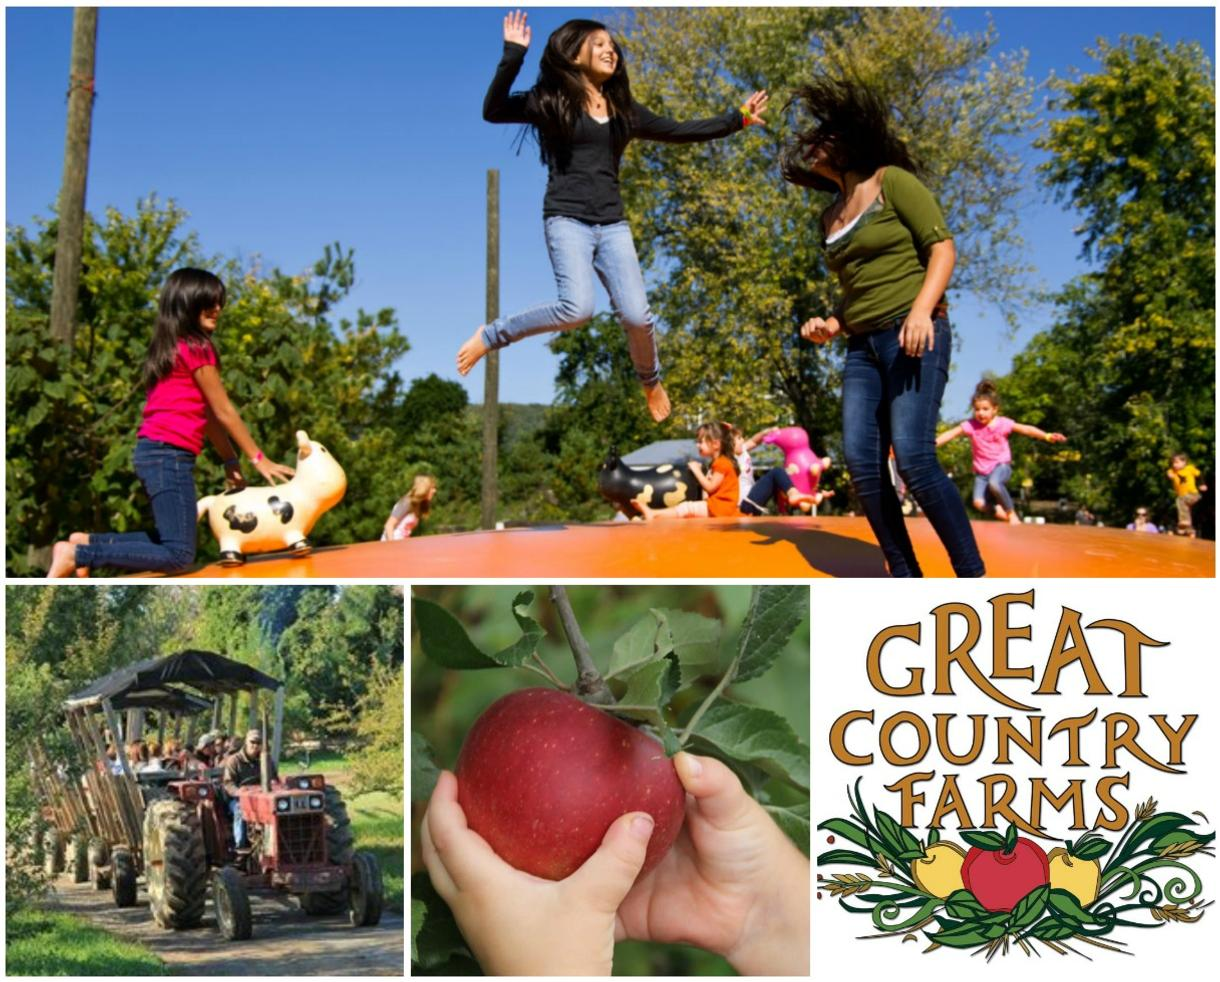 $7 for September Weekday Great Country Farms Admission & APPLE PICKING (44% Off!)